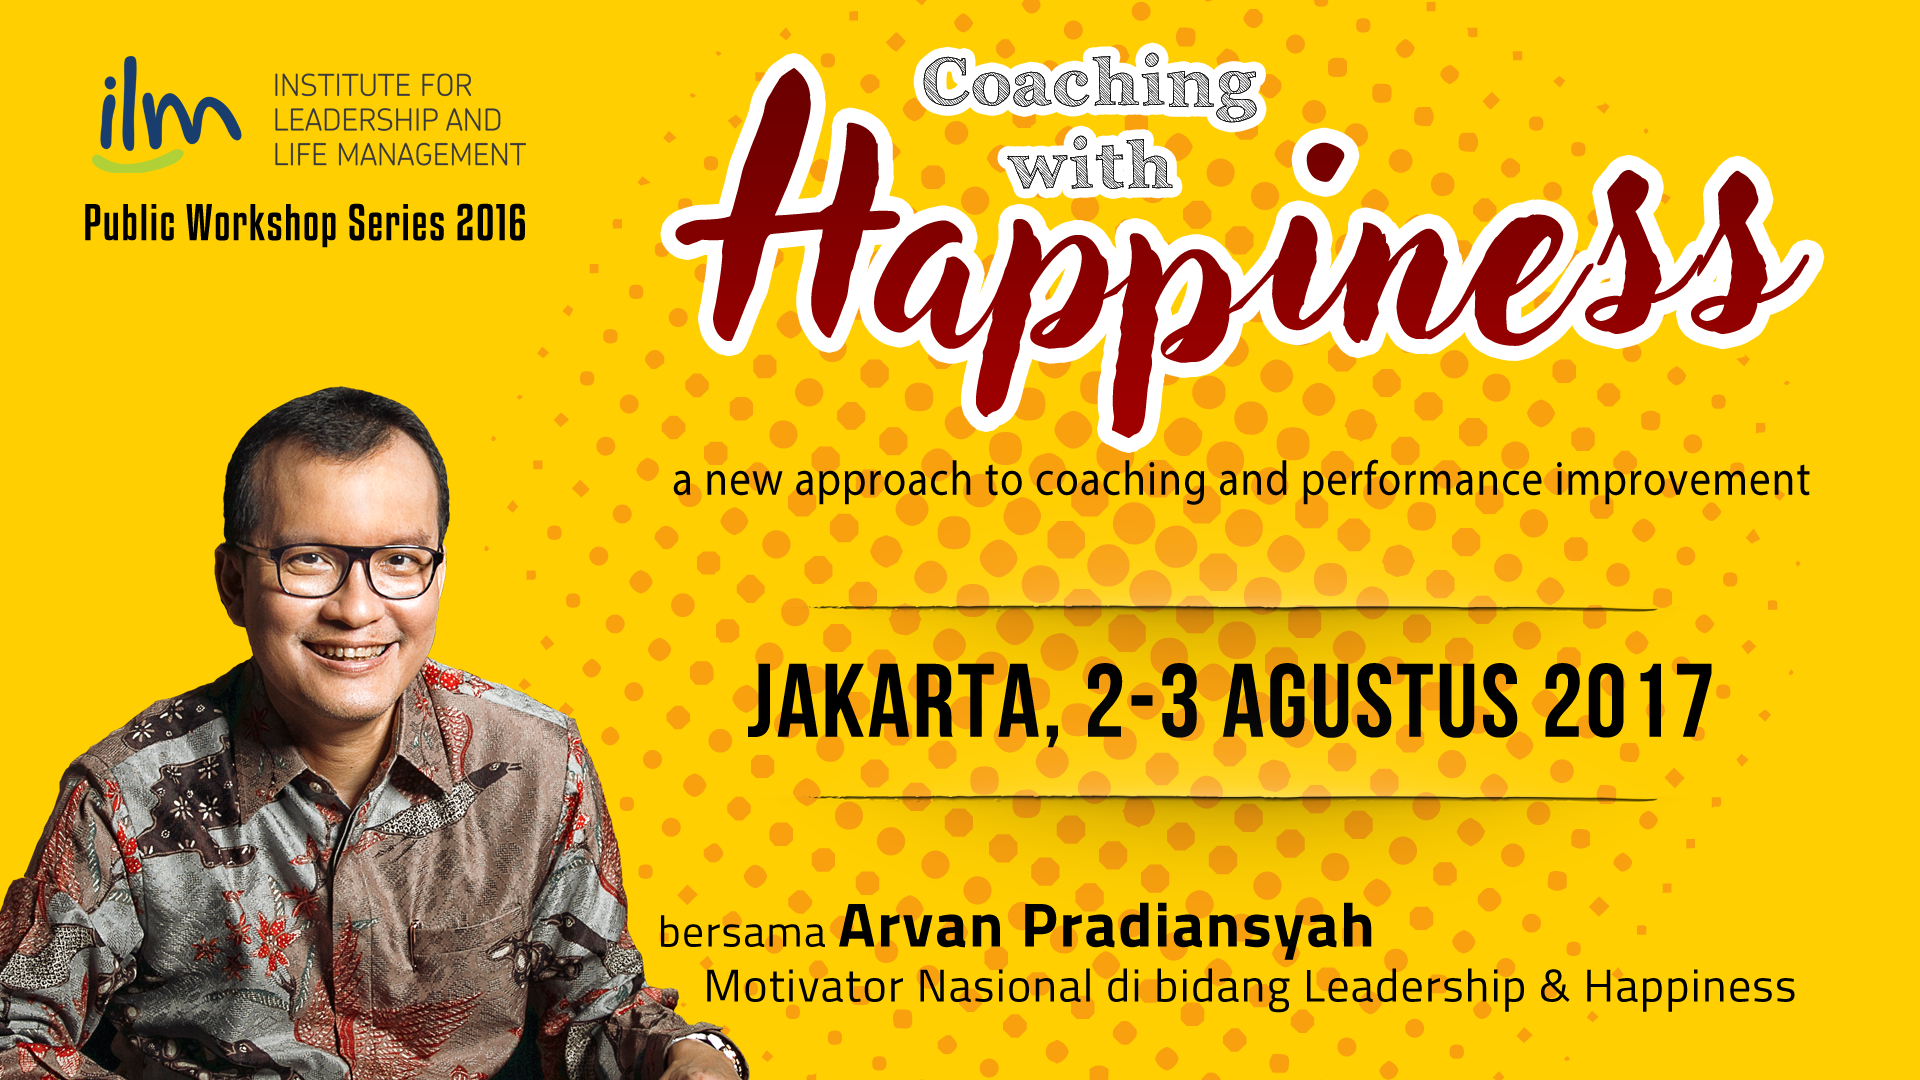 Coaching with Happiness